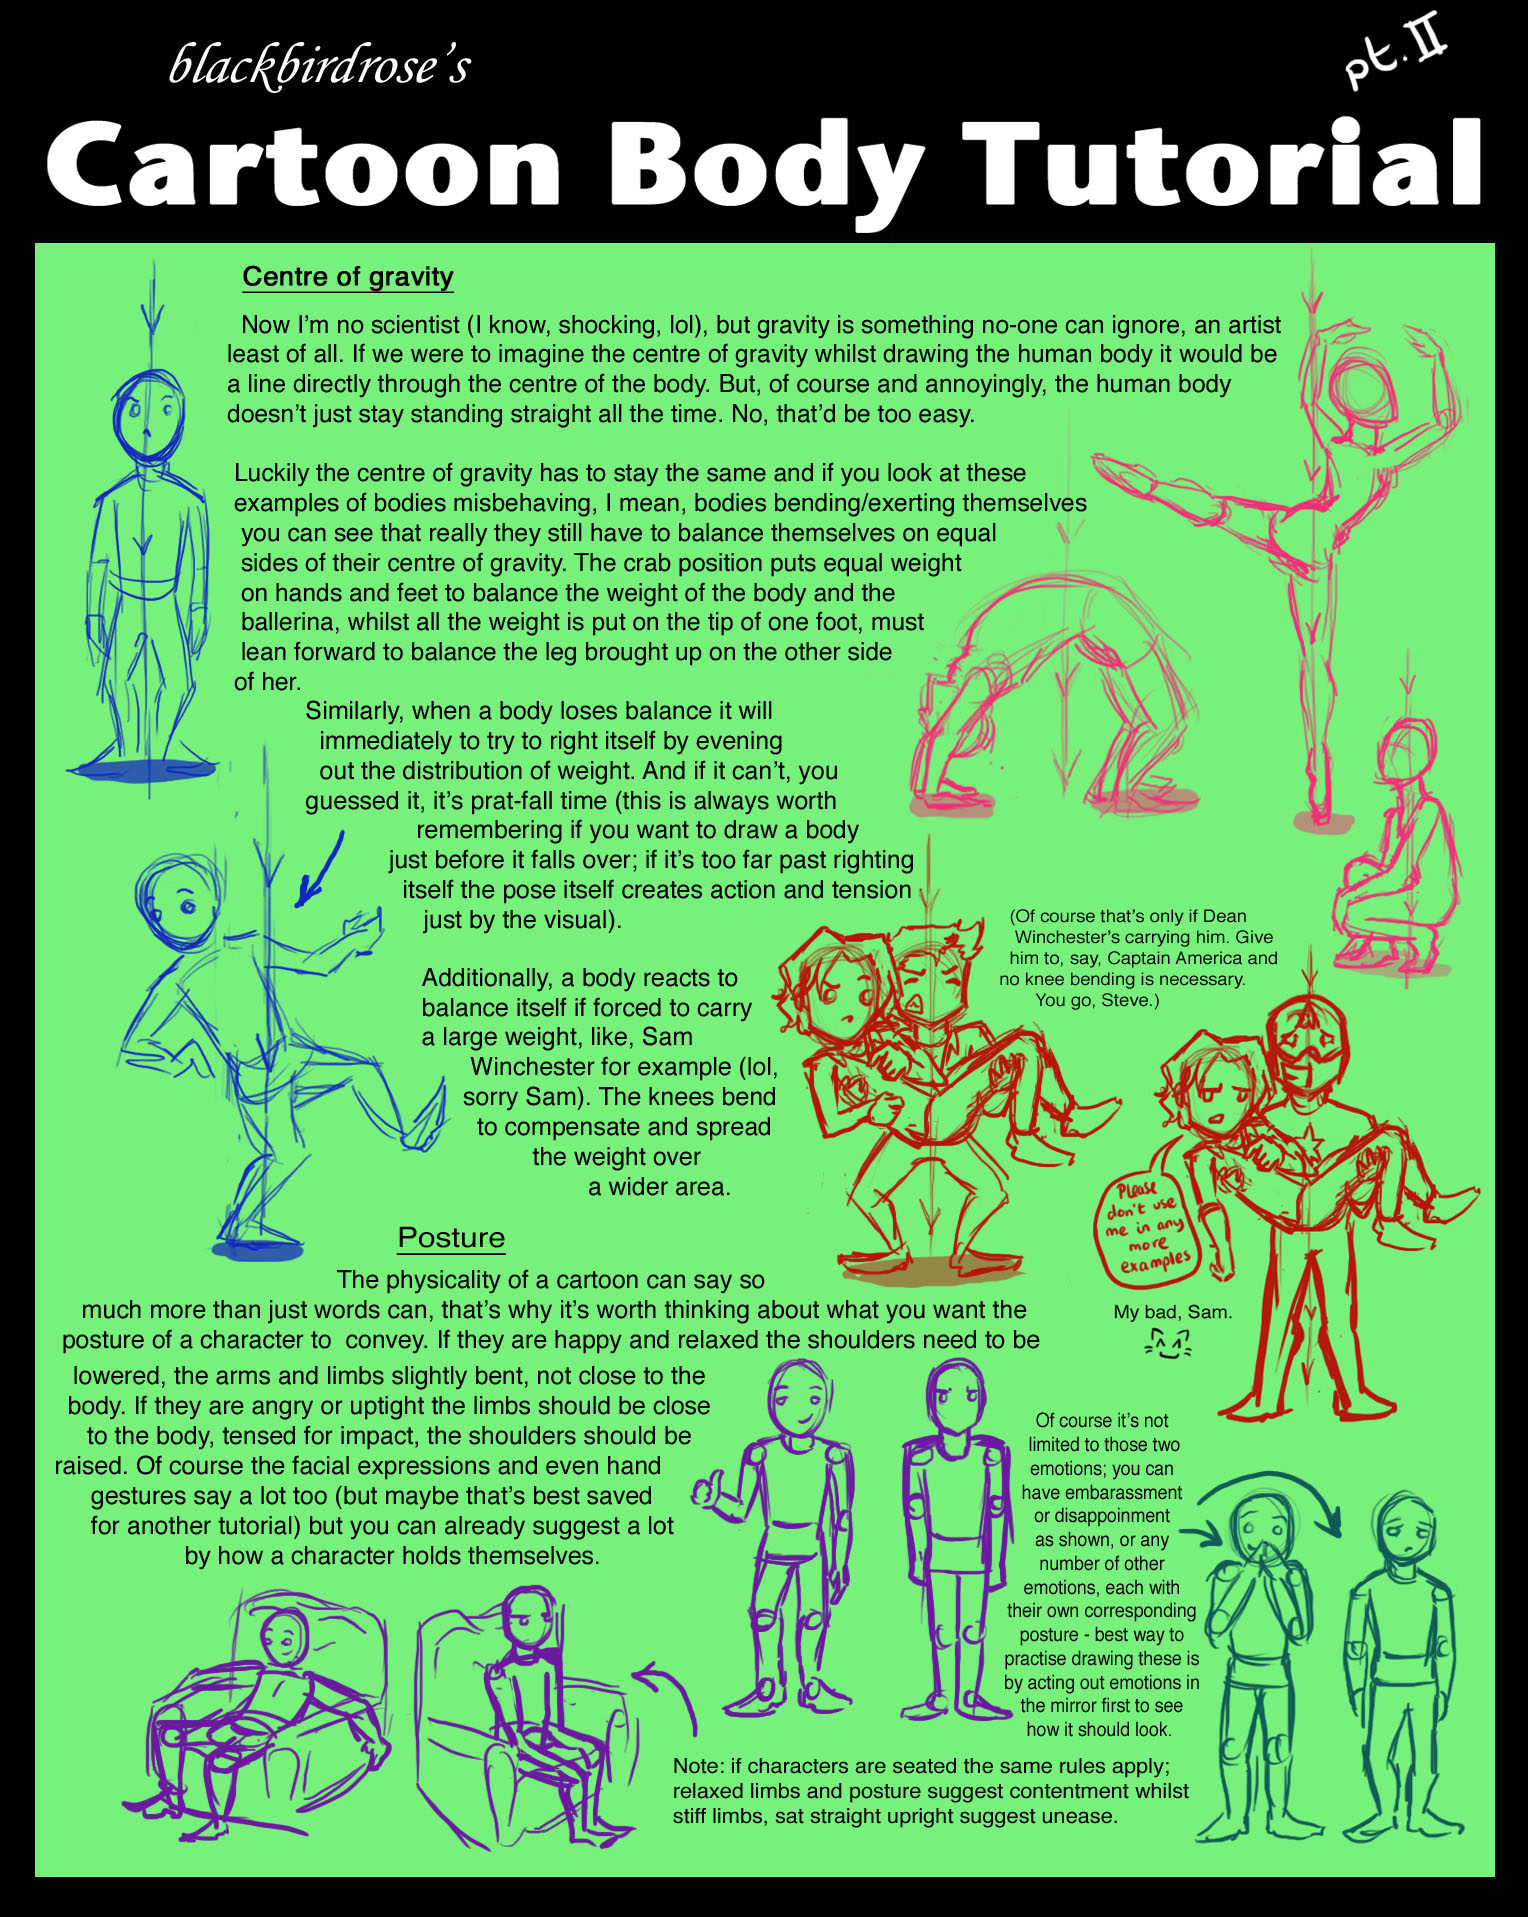 BBR style: Toon Body Tutorial 2 by blackbirdrose